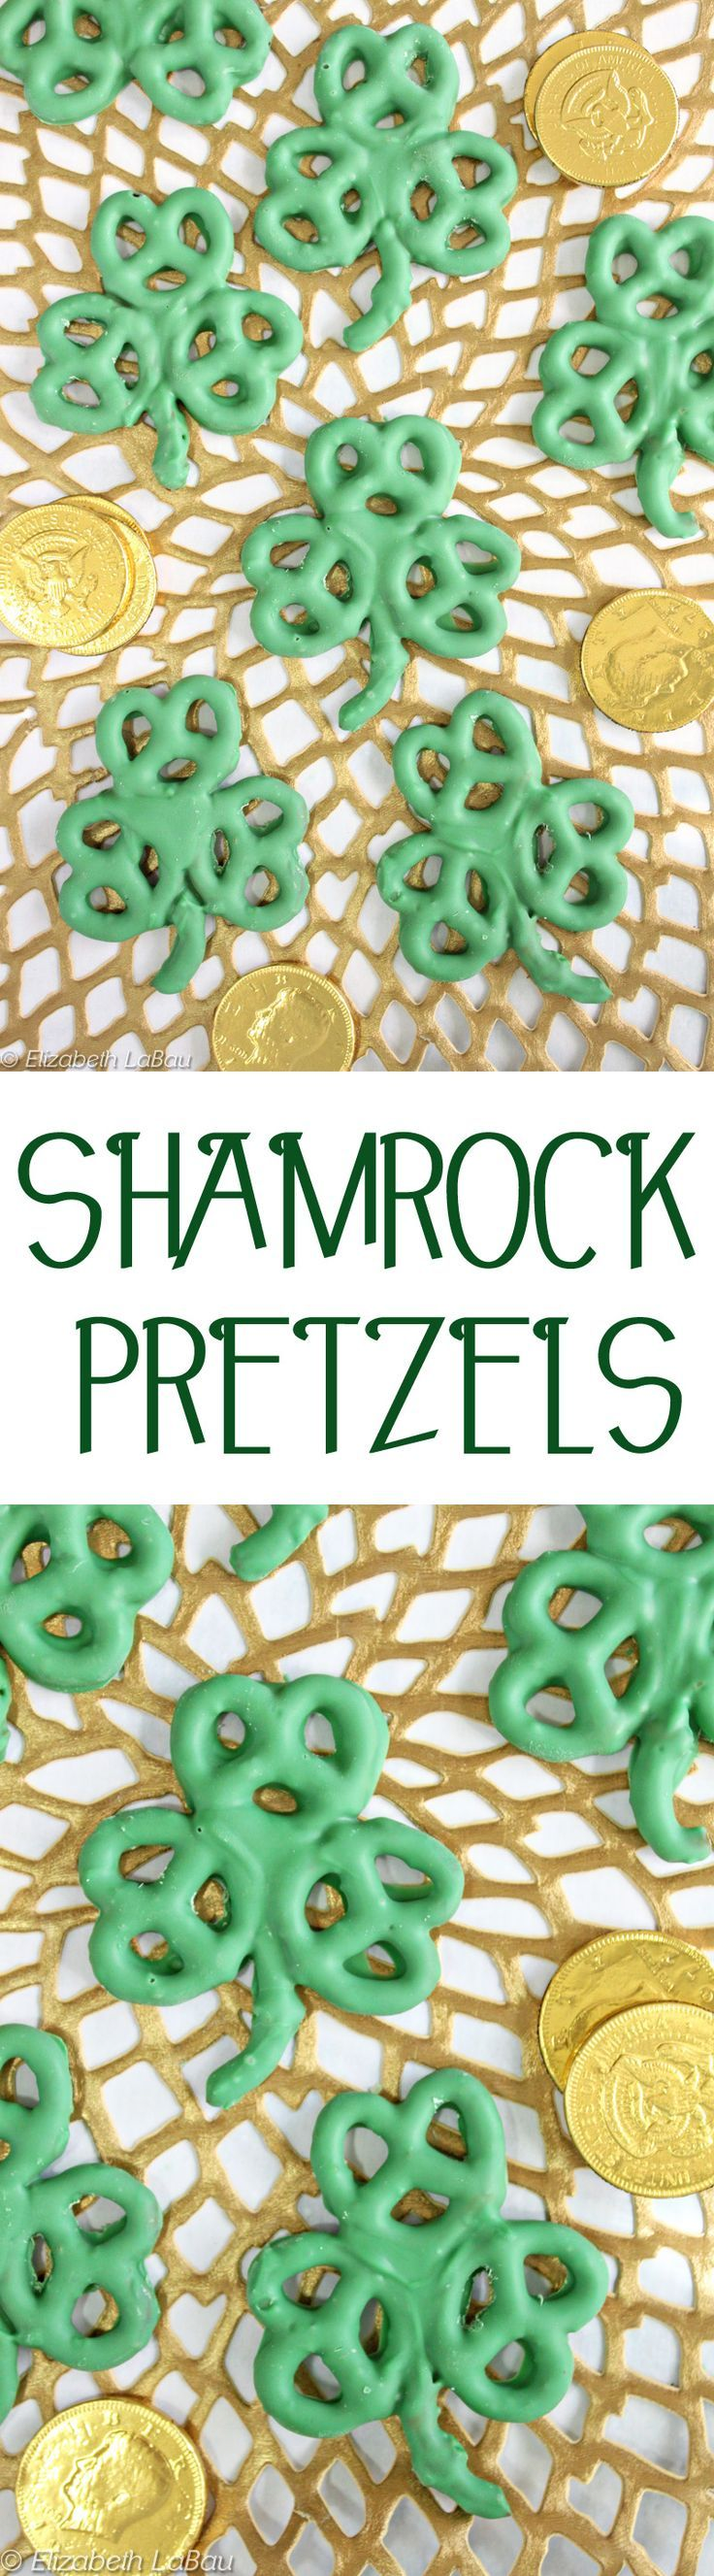 Shamrock Pretzels are a super easy St. Patrick's Day candy! Just 2 ingredients and 10 minutes to make these cute treats--and they're great for kids to help with, too!   From http://candy.about.com